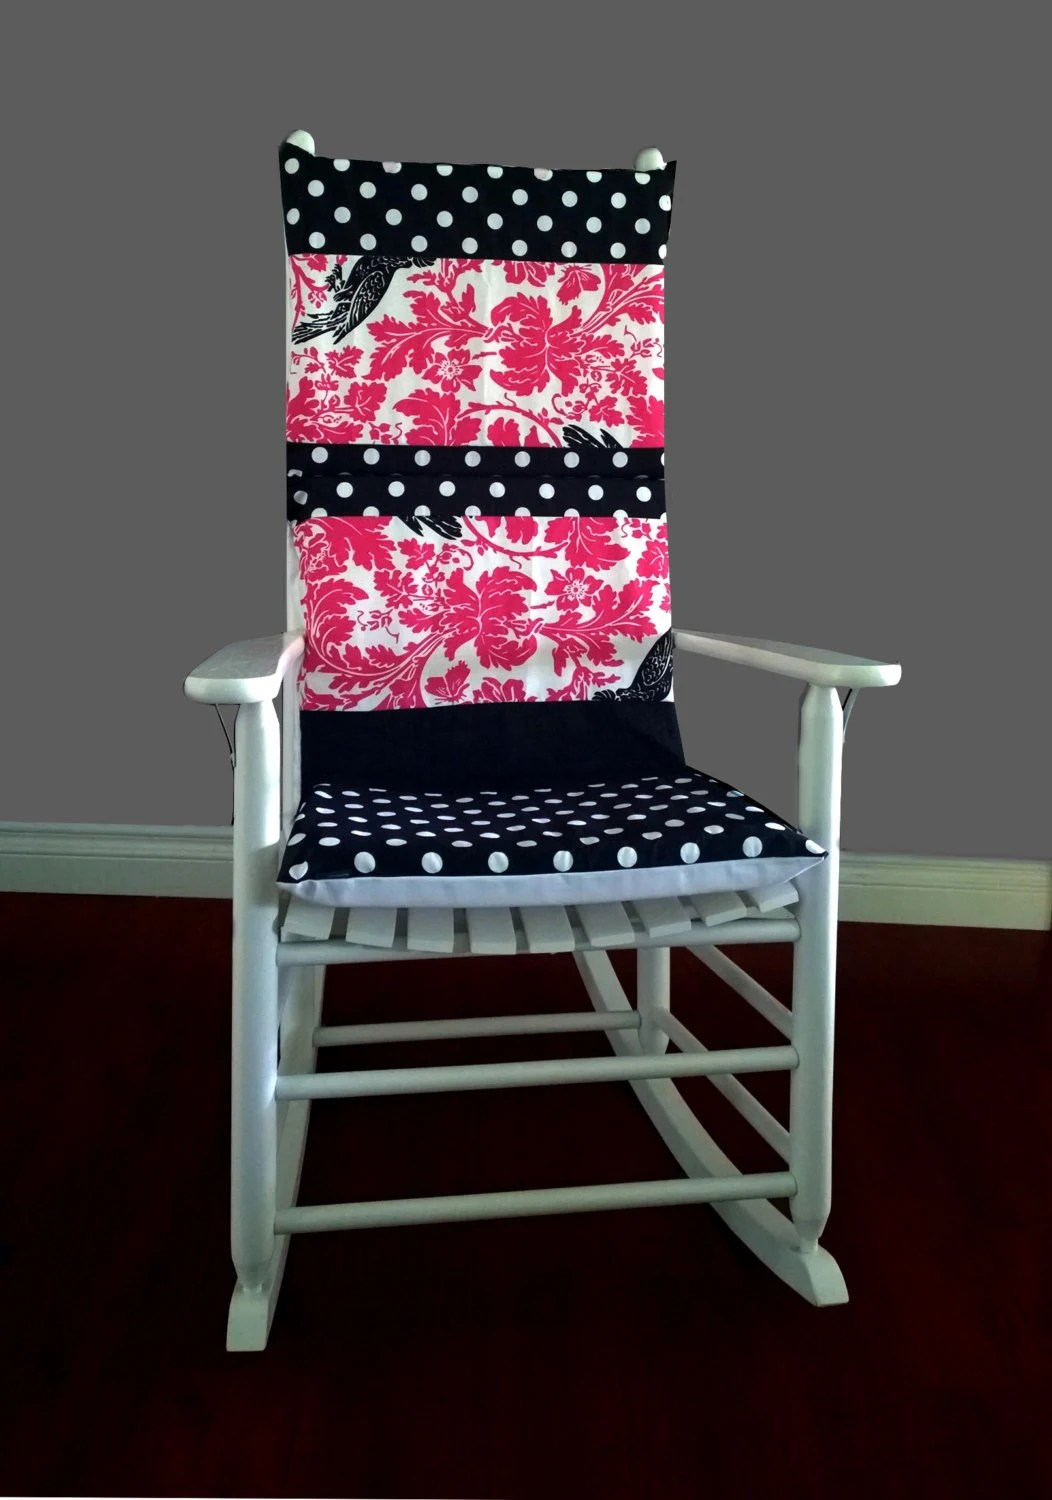 polka dot rocking chair cushions swivel chairs jordans cushion cover barber pink black by